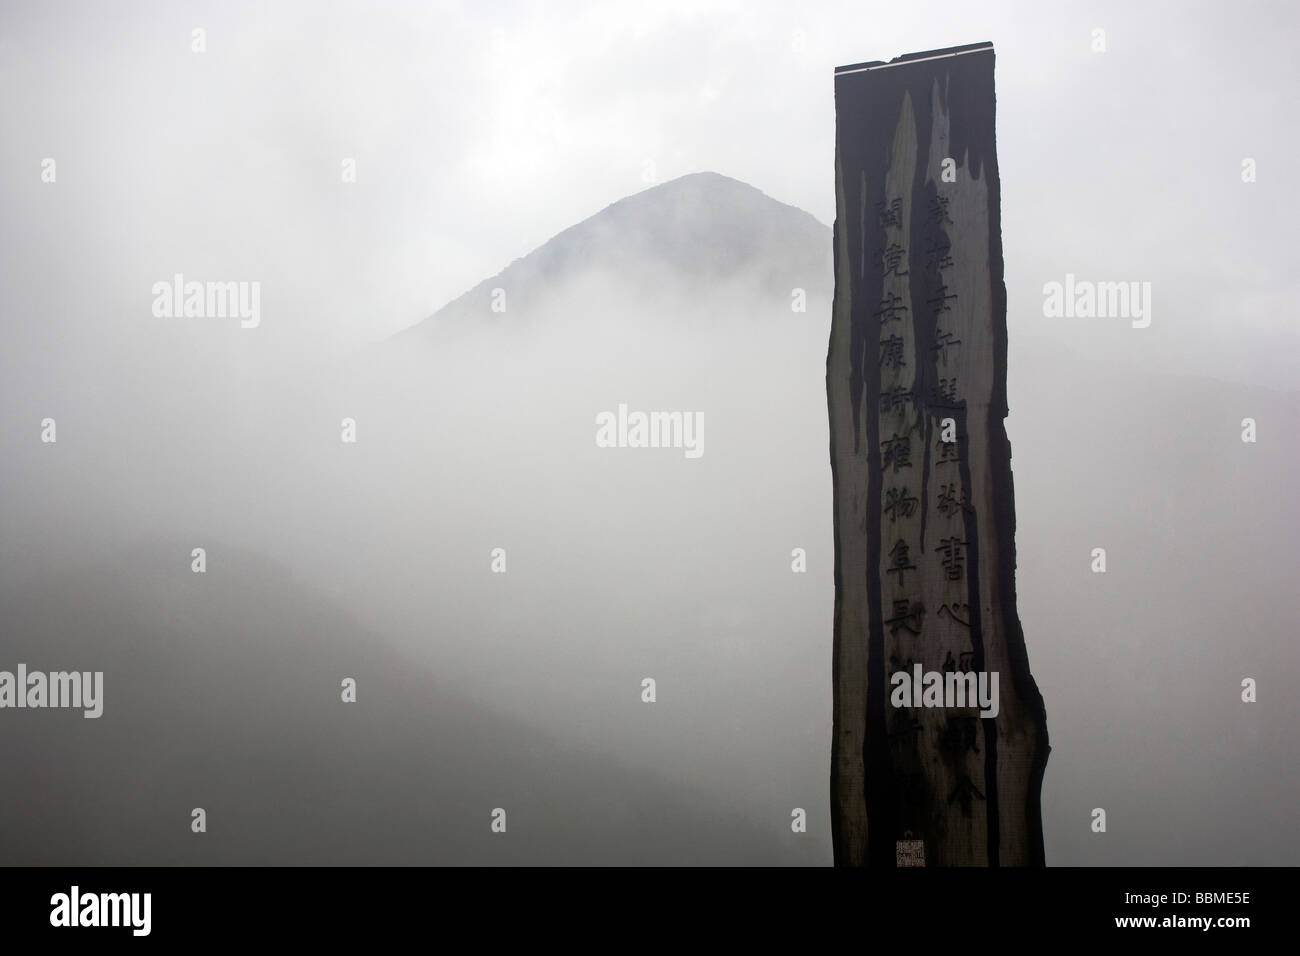 China, Hong Kong, Lantua Island. The Wisdom trail.  The outdoor wooden version of the 260-word prayer is on 38 beams. - Stock Image